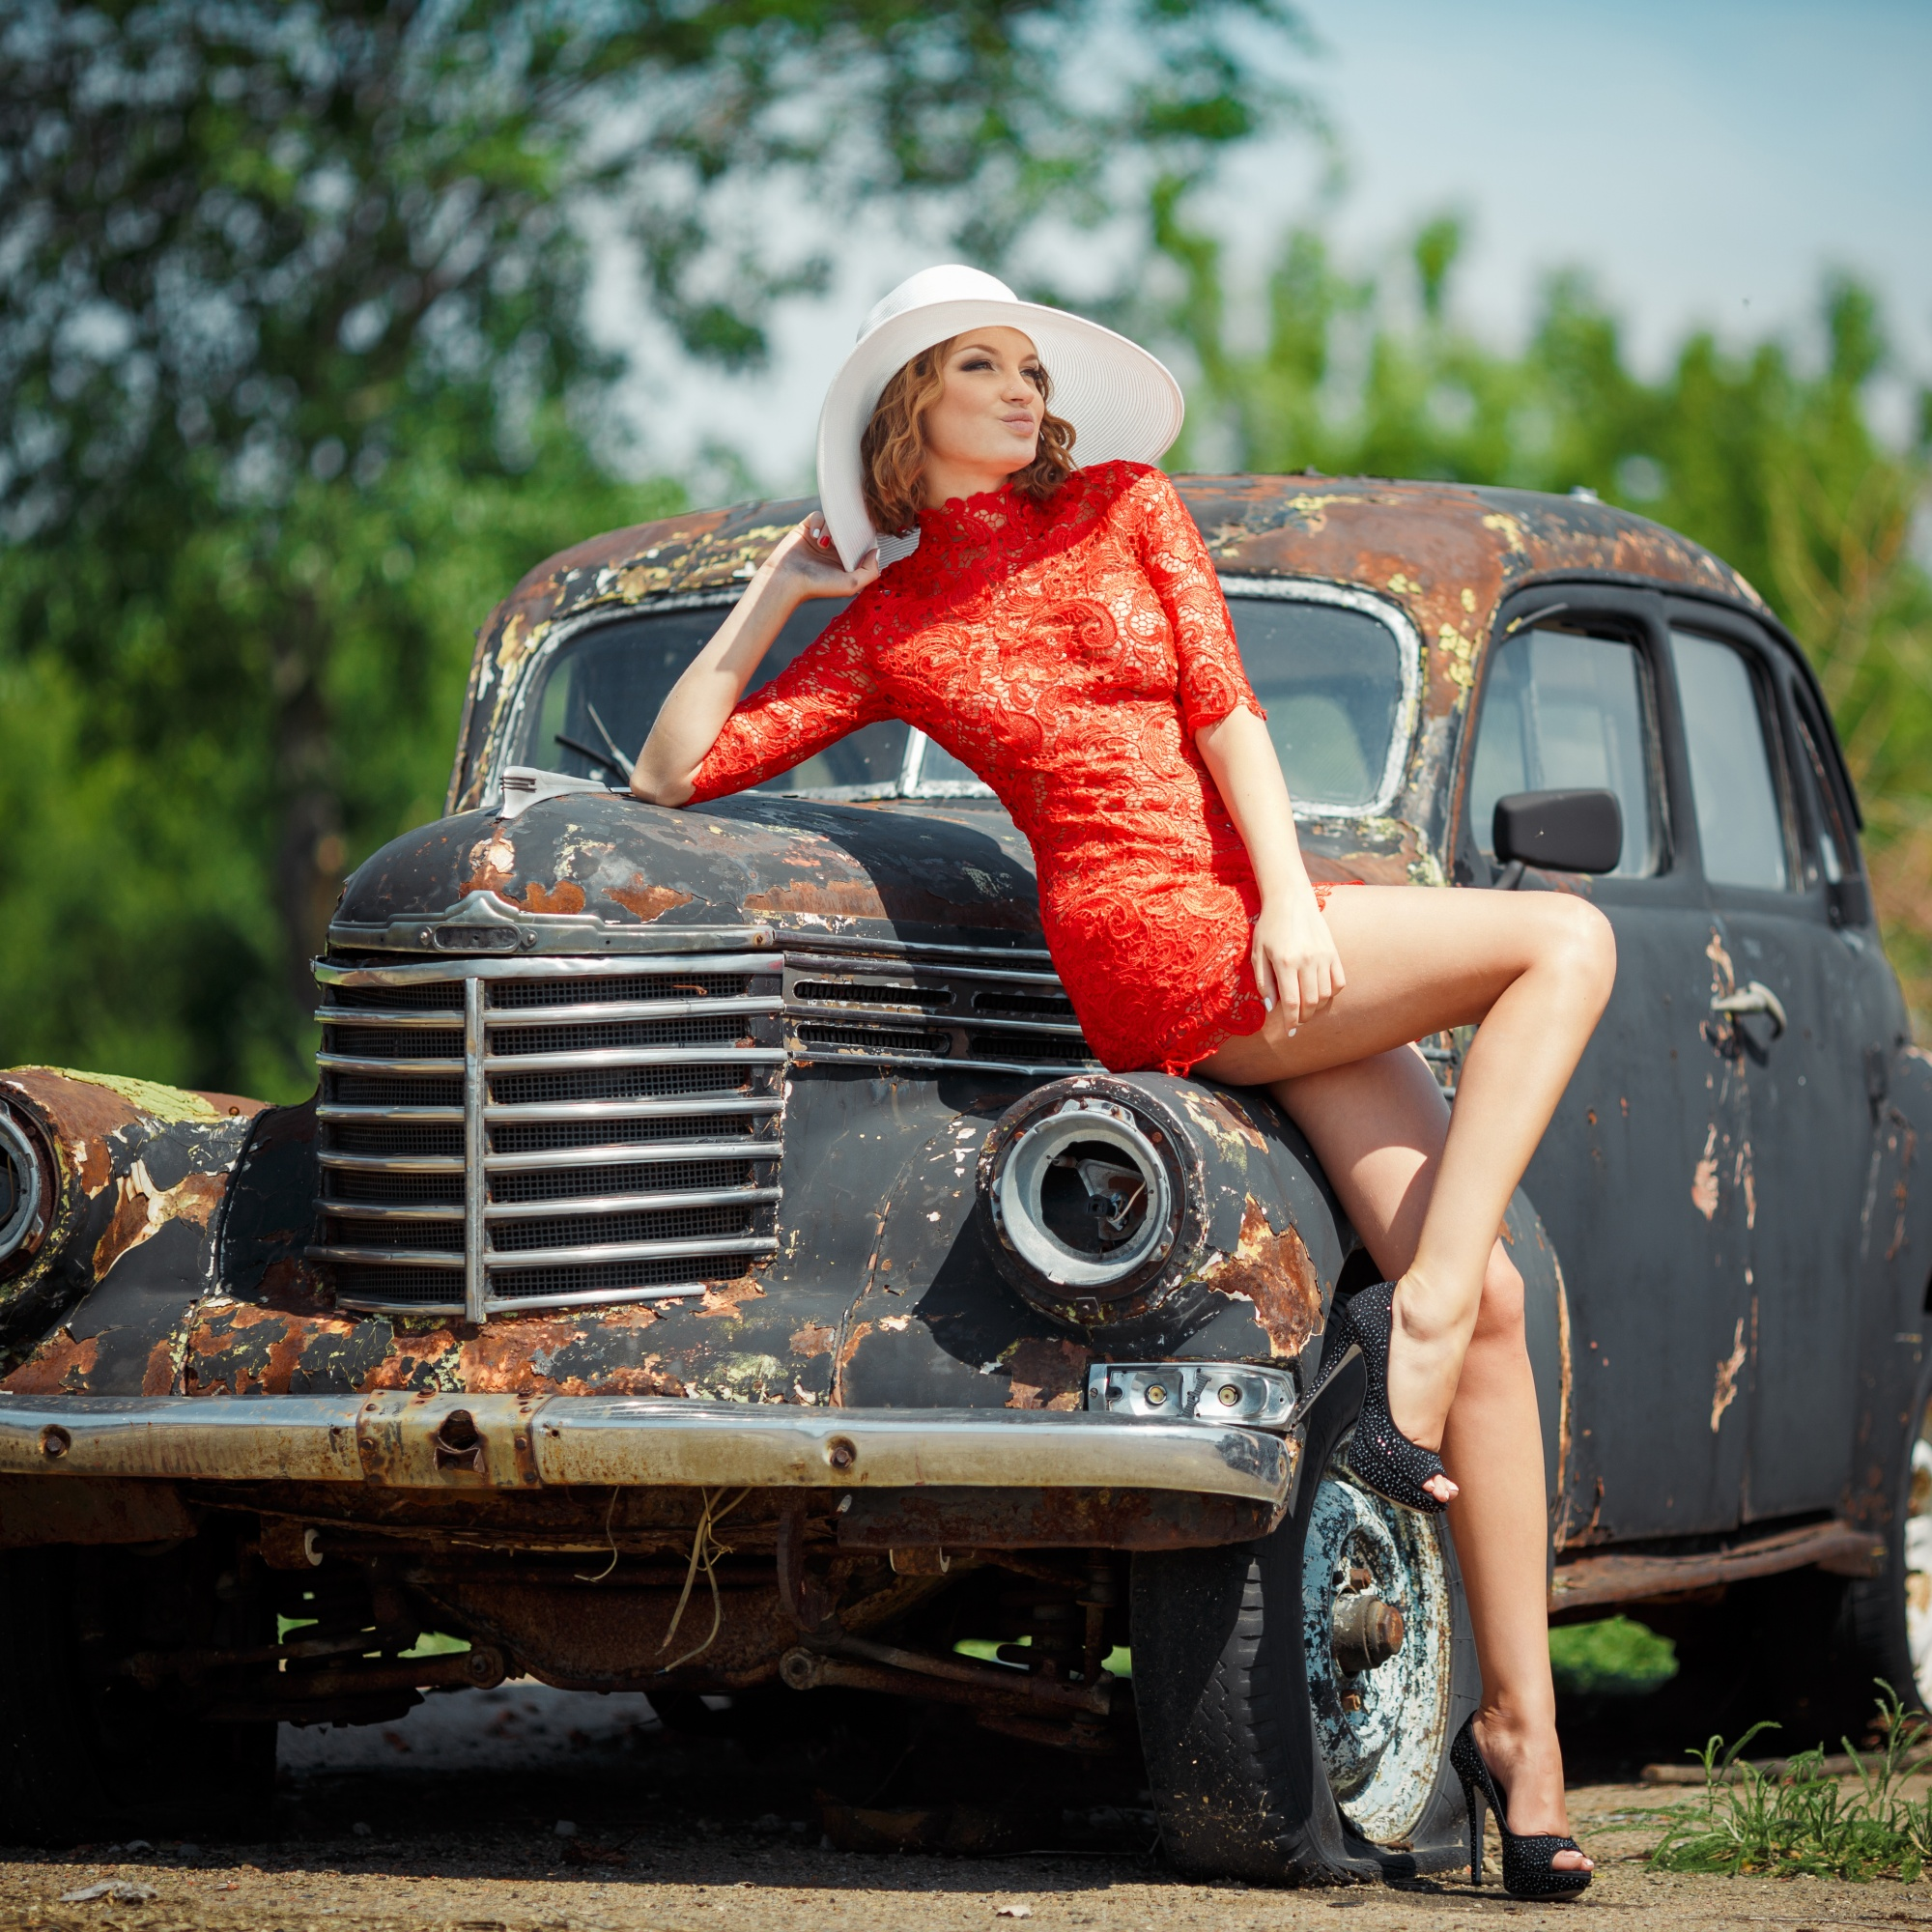 Woman in a red dress leaning against an old car